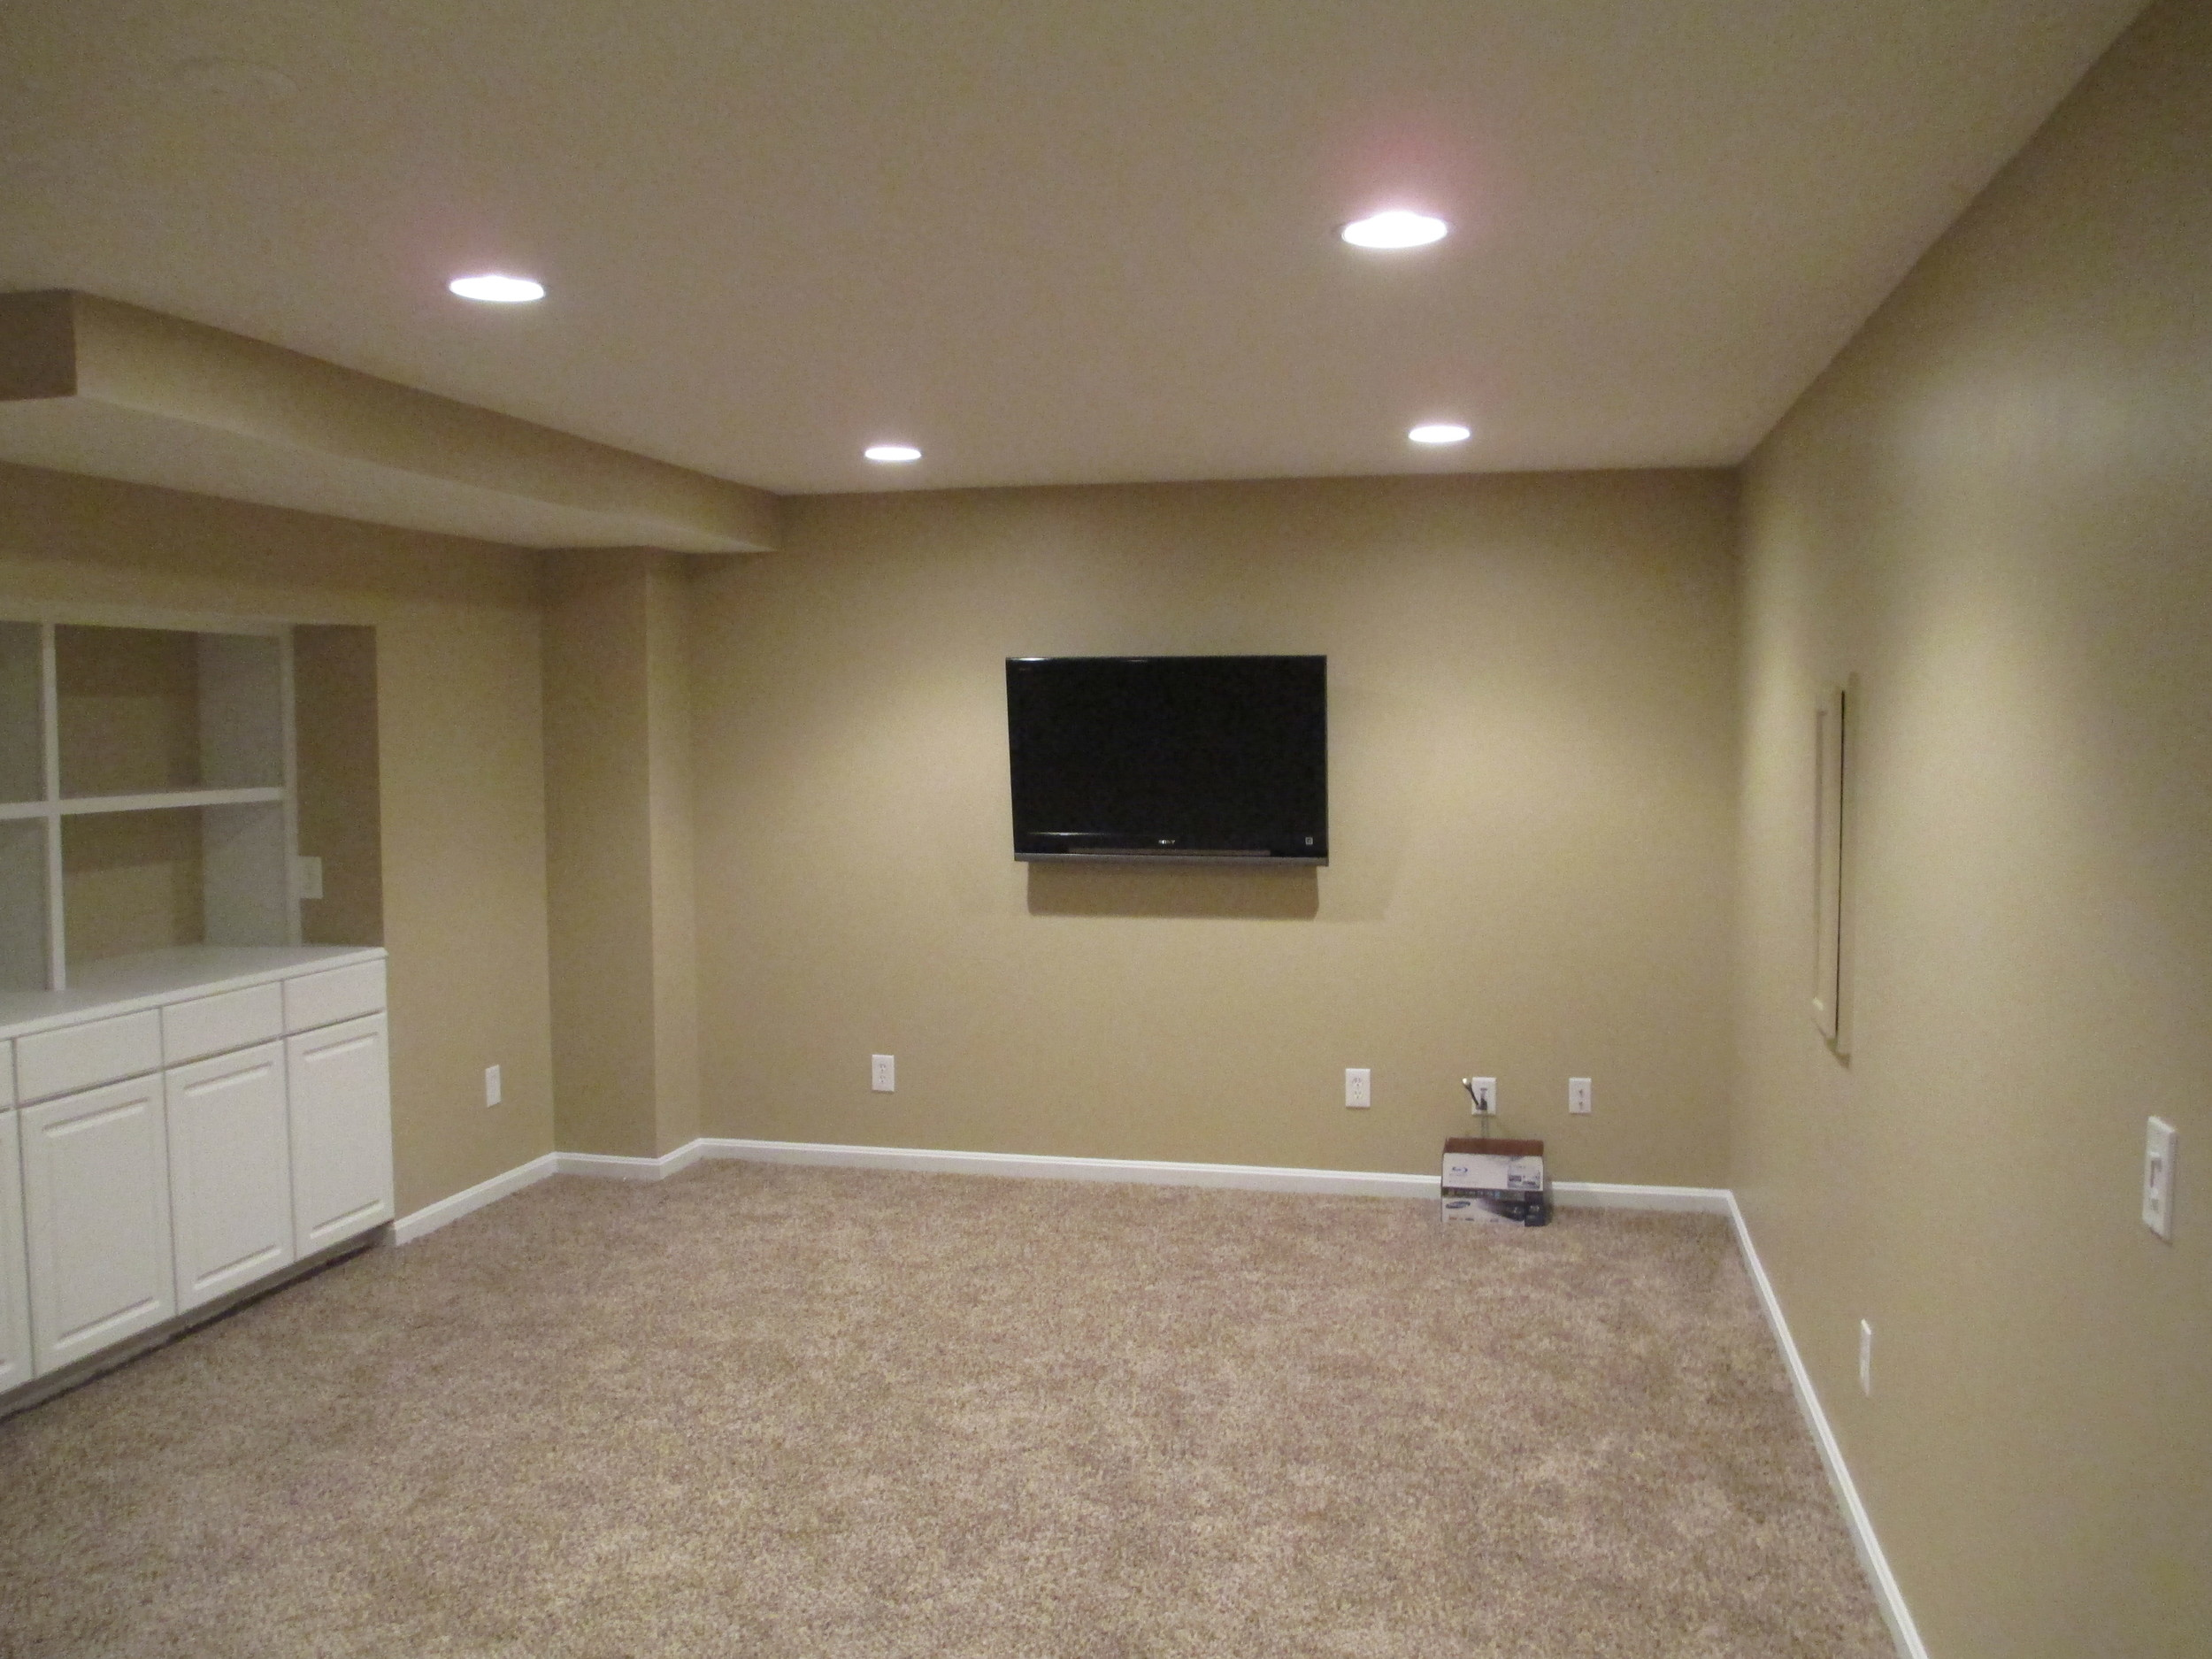 Eastgate Flat Panel TV Installation